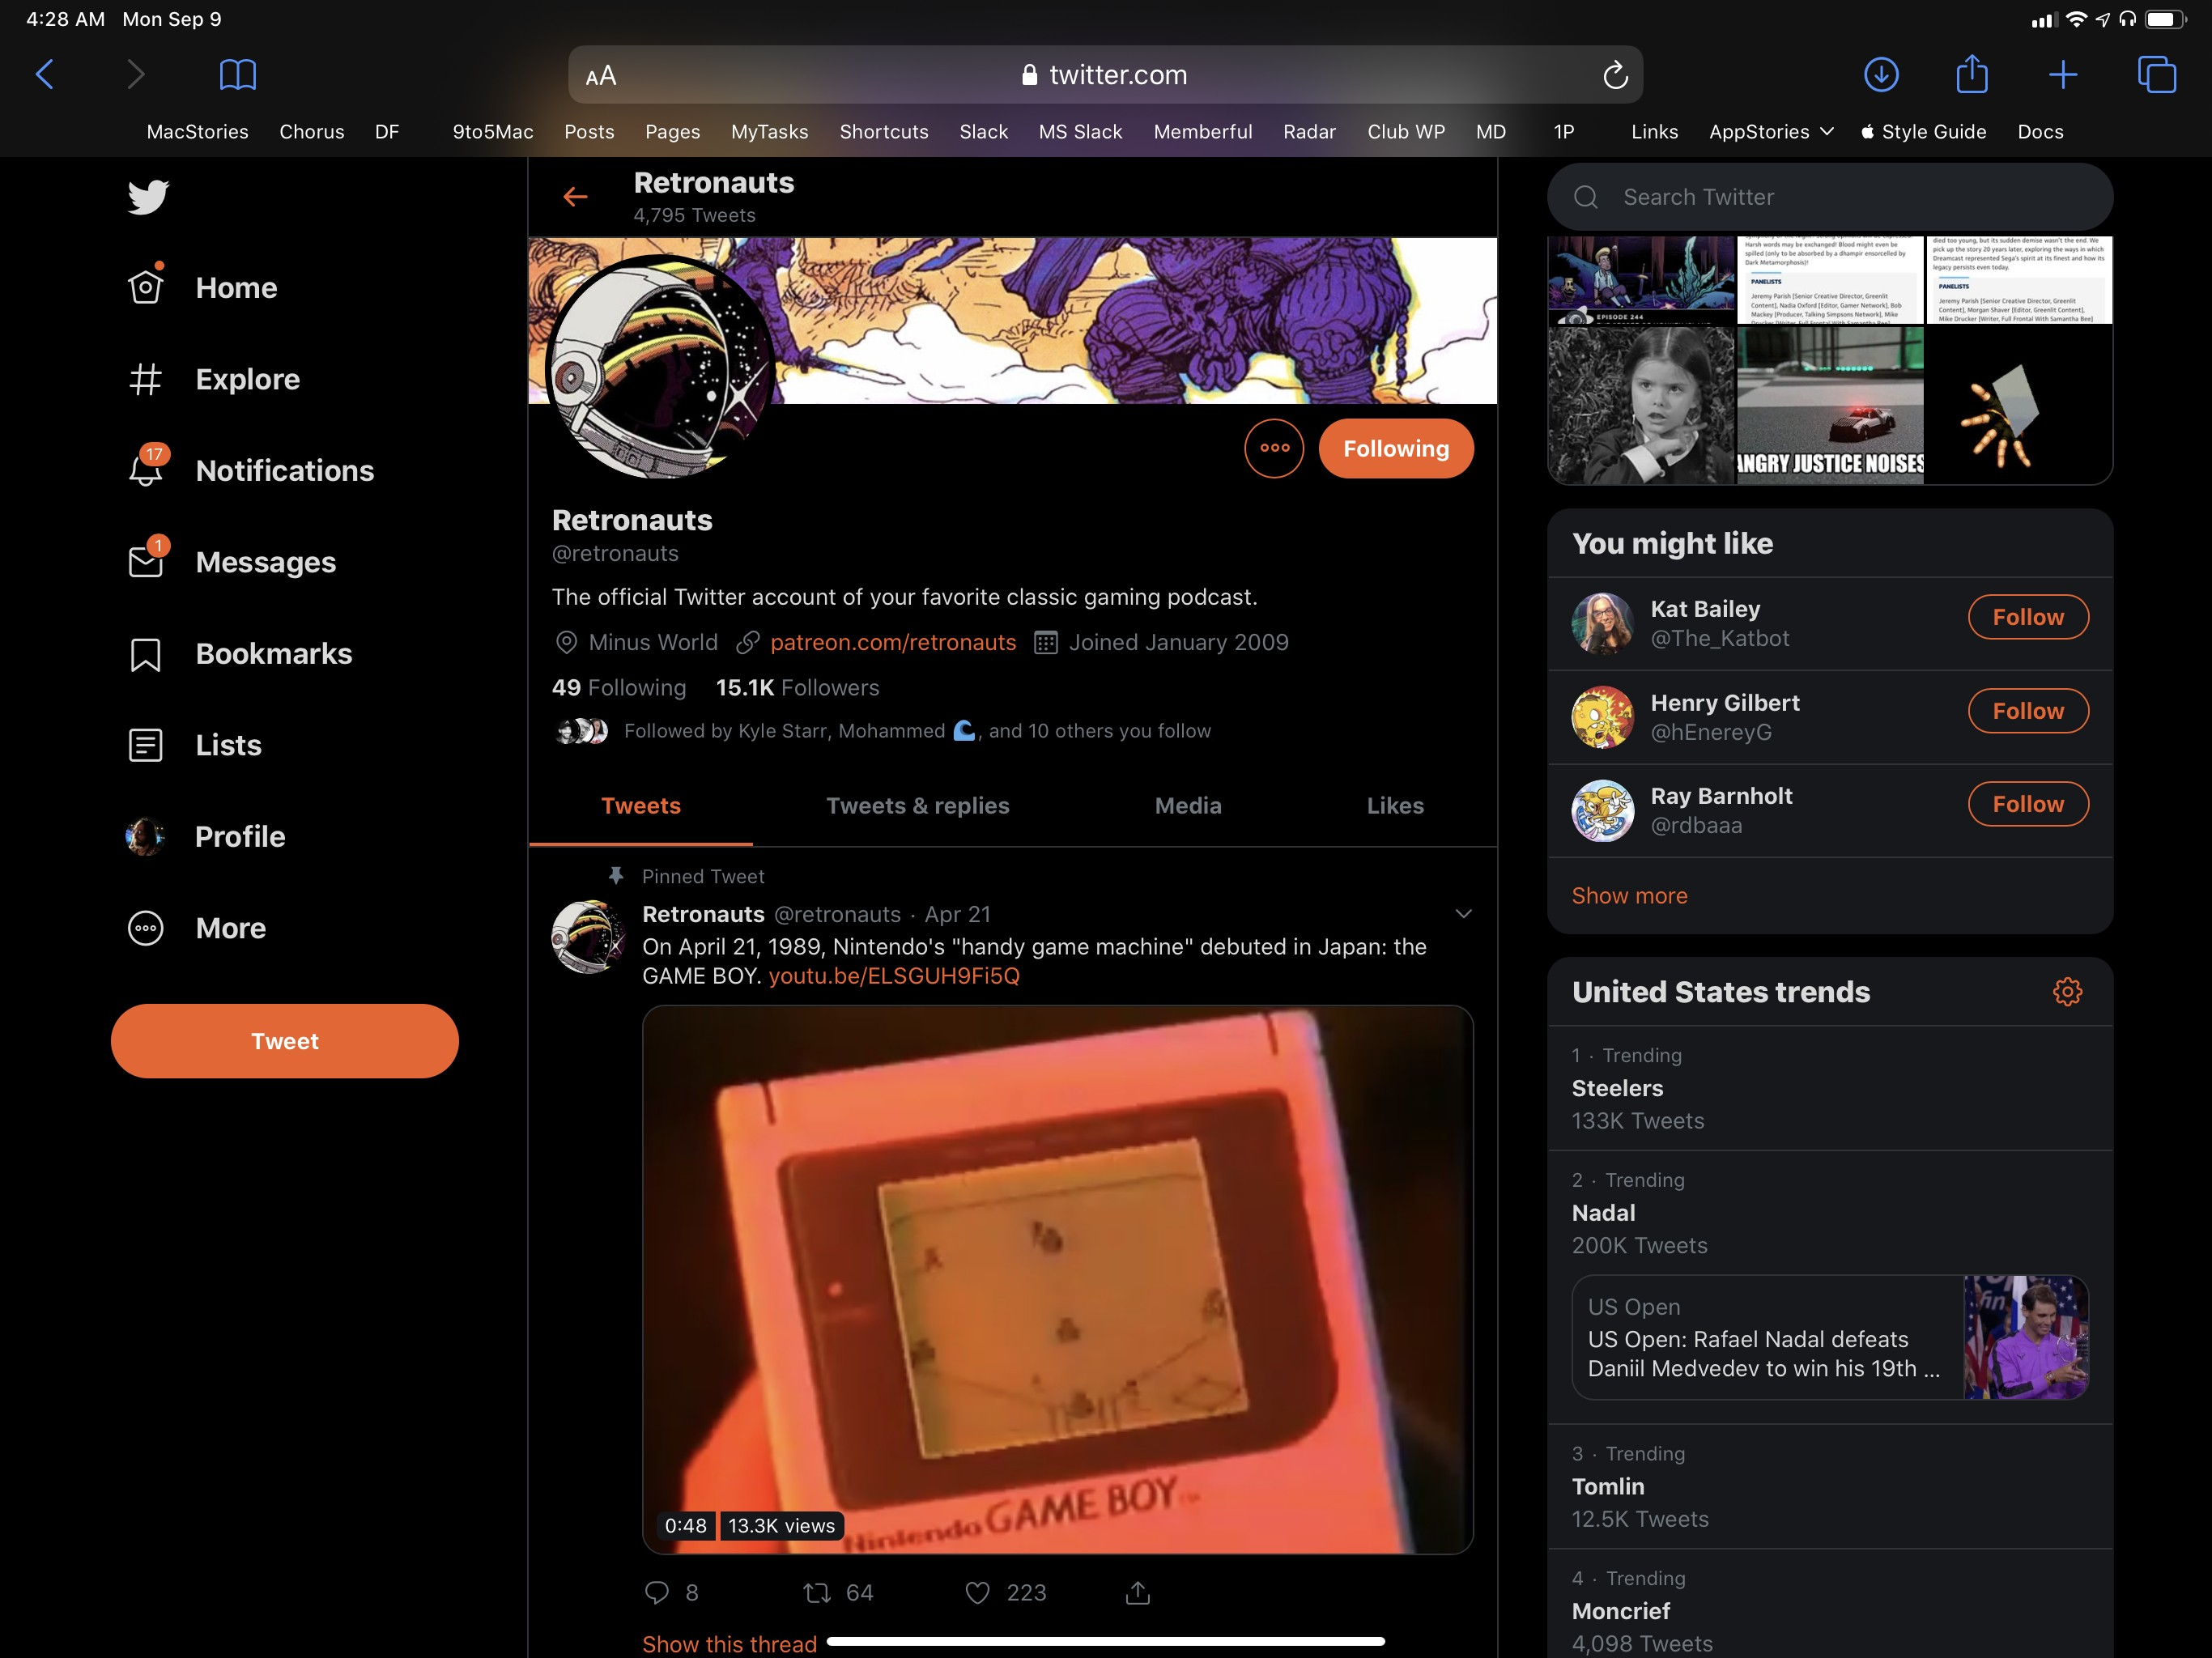 Twitter in desktop Safari is better than Twitter's native iPad app.